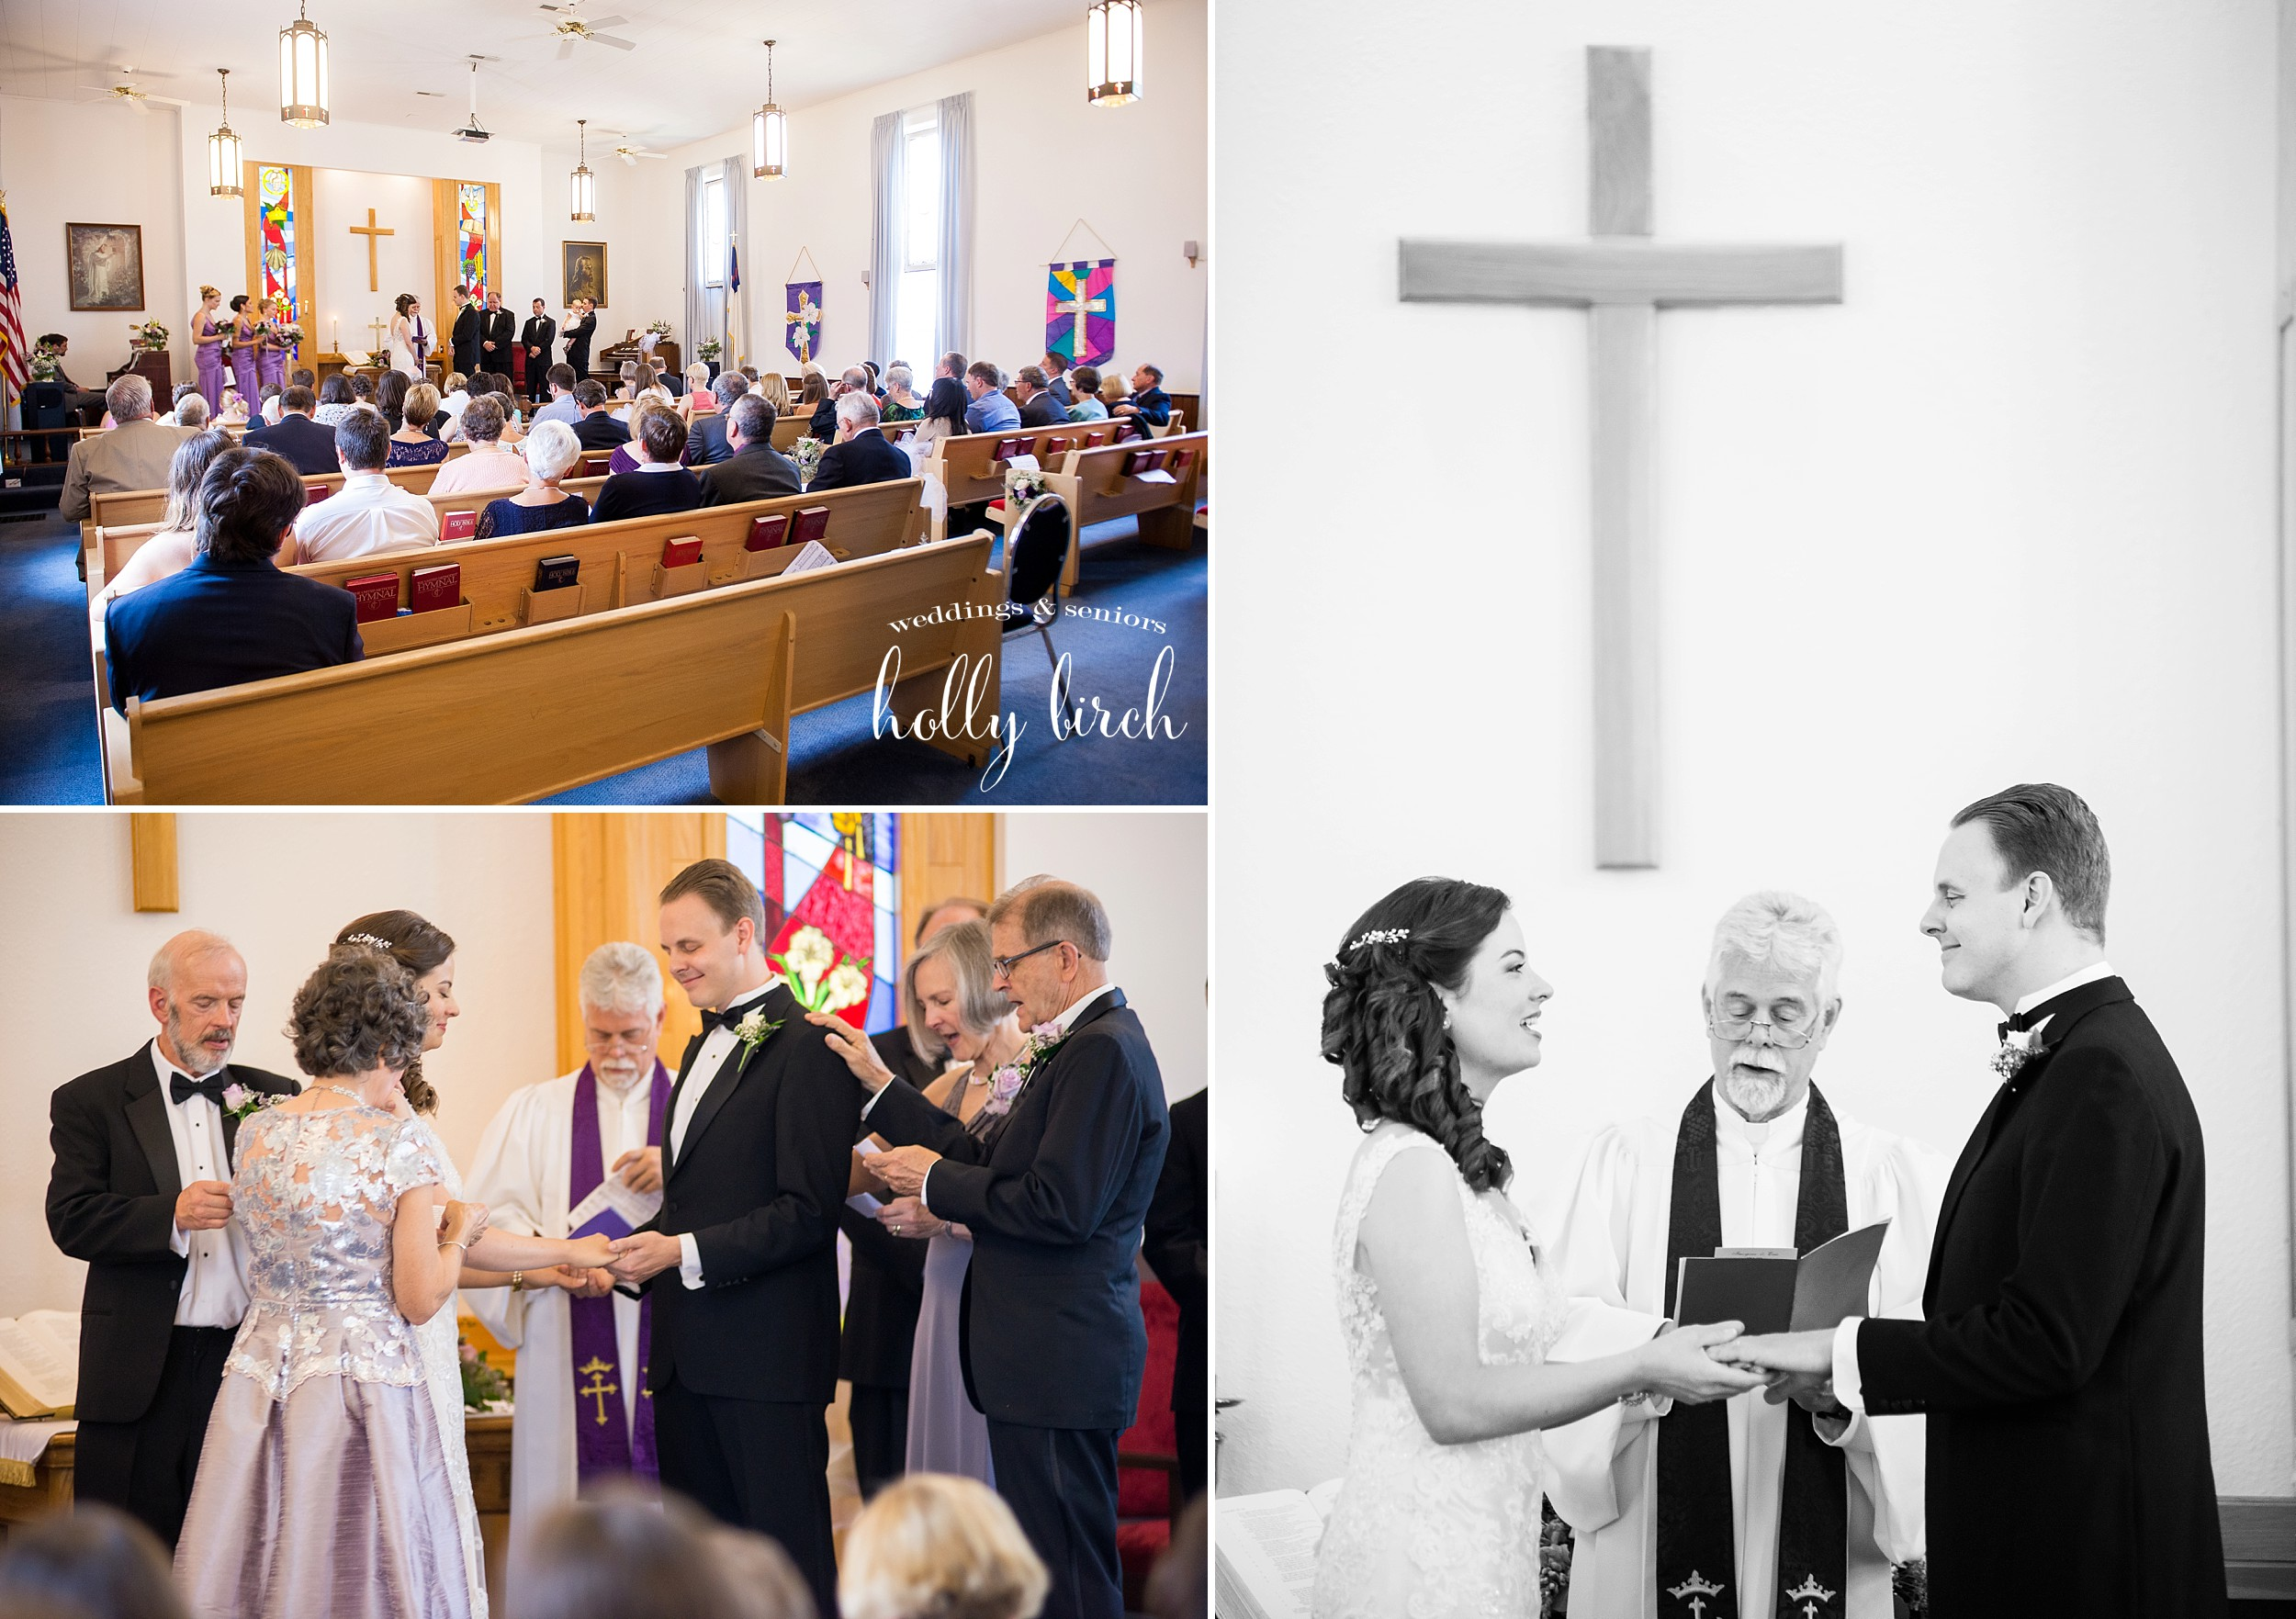 little white church wedding ceremony